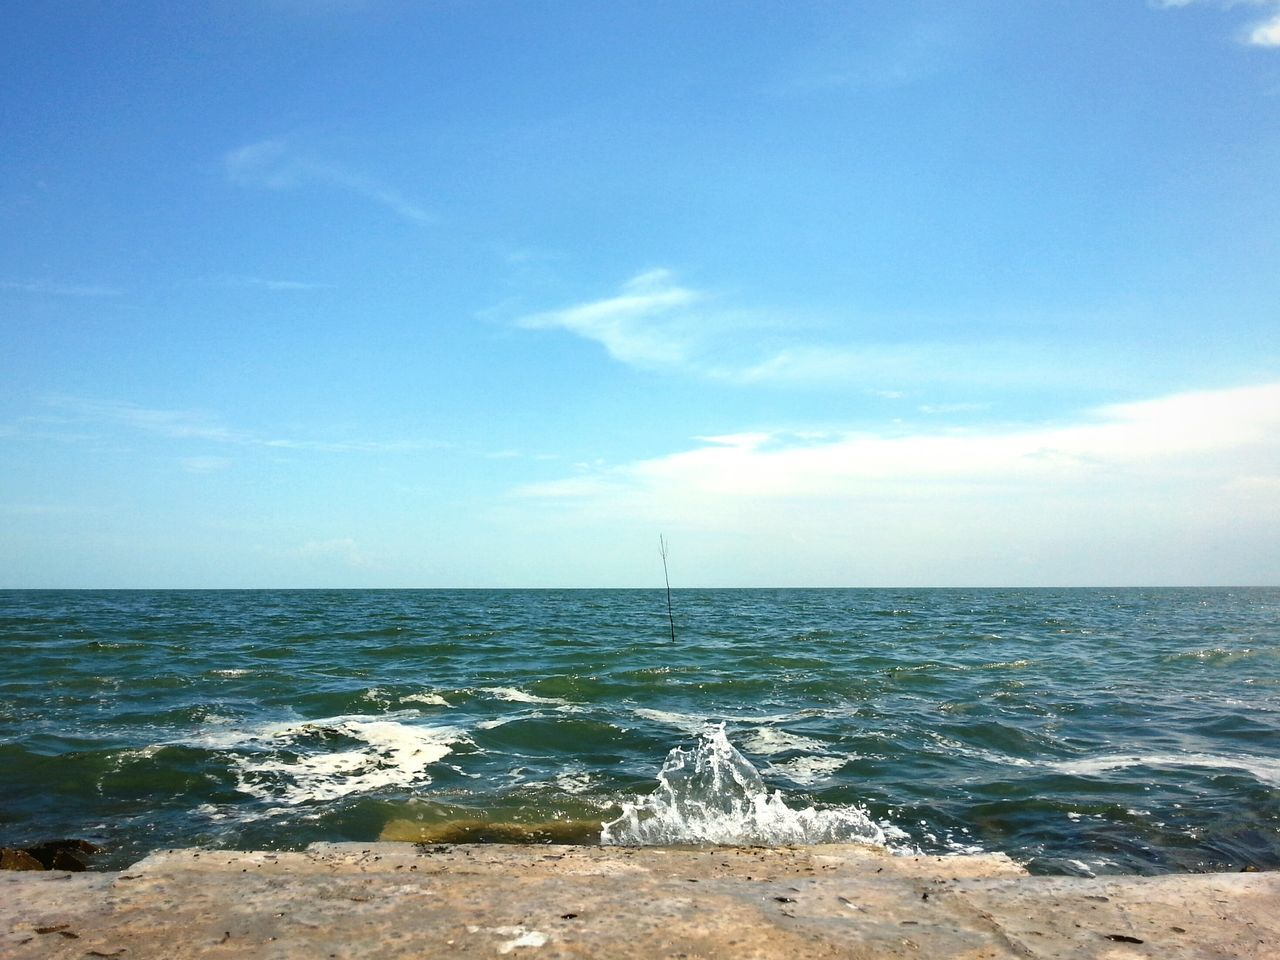 sea, horizon over water, water, beauty in nature, nature, scenics, sky, tranquil scene, tranquility, idyllic, outdoors, no people, day, blue, cloud - sky, wave, beach